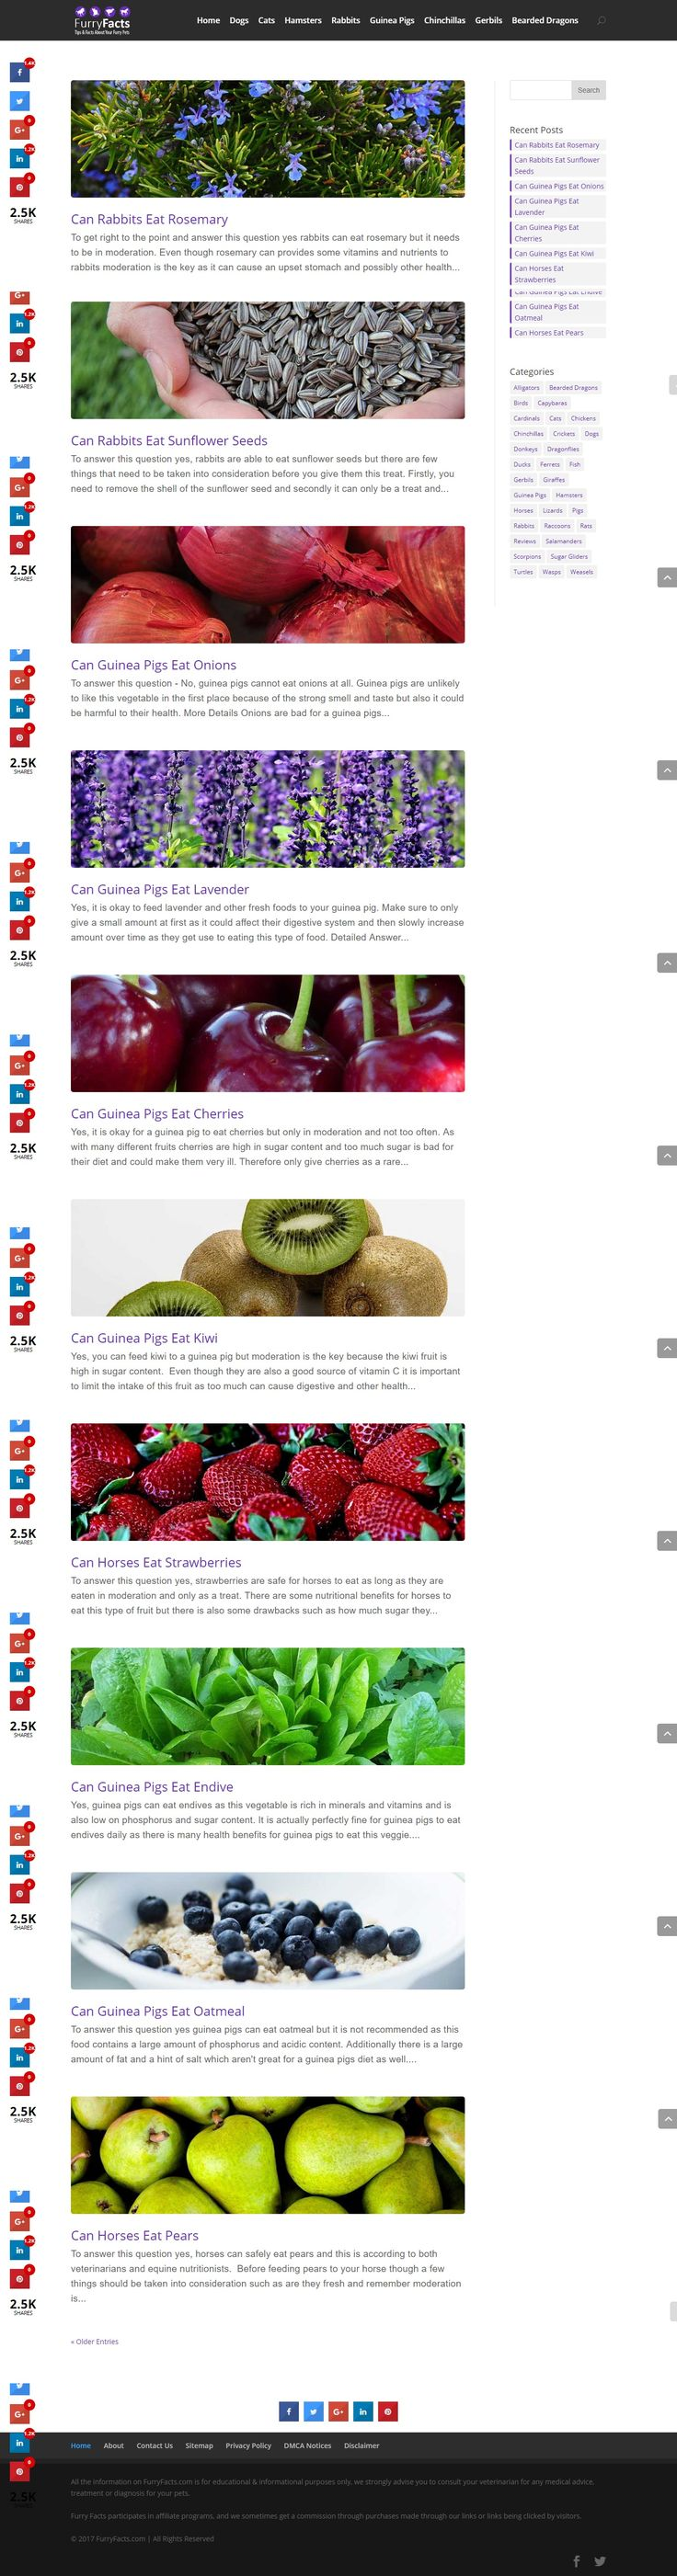 Furry Facts provides all information regarding diet and nutrition for pets. They provide authentic answers to your queries and regularly update the site with useful and relevant information related to a variety of animals  ranging from chinchillas to hamsters to cats and dogs.